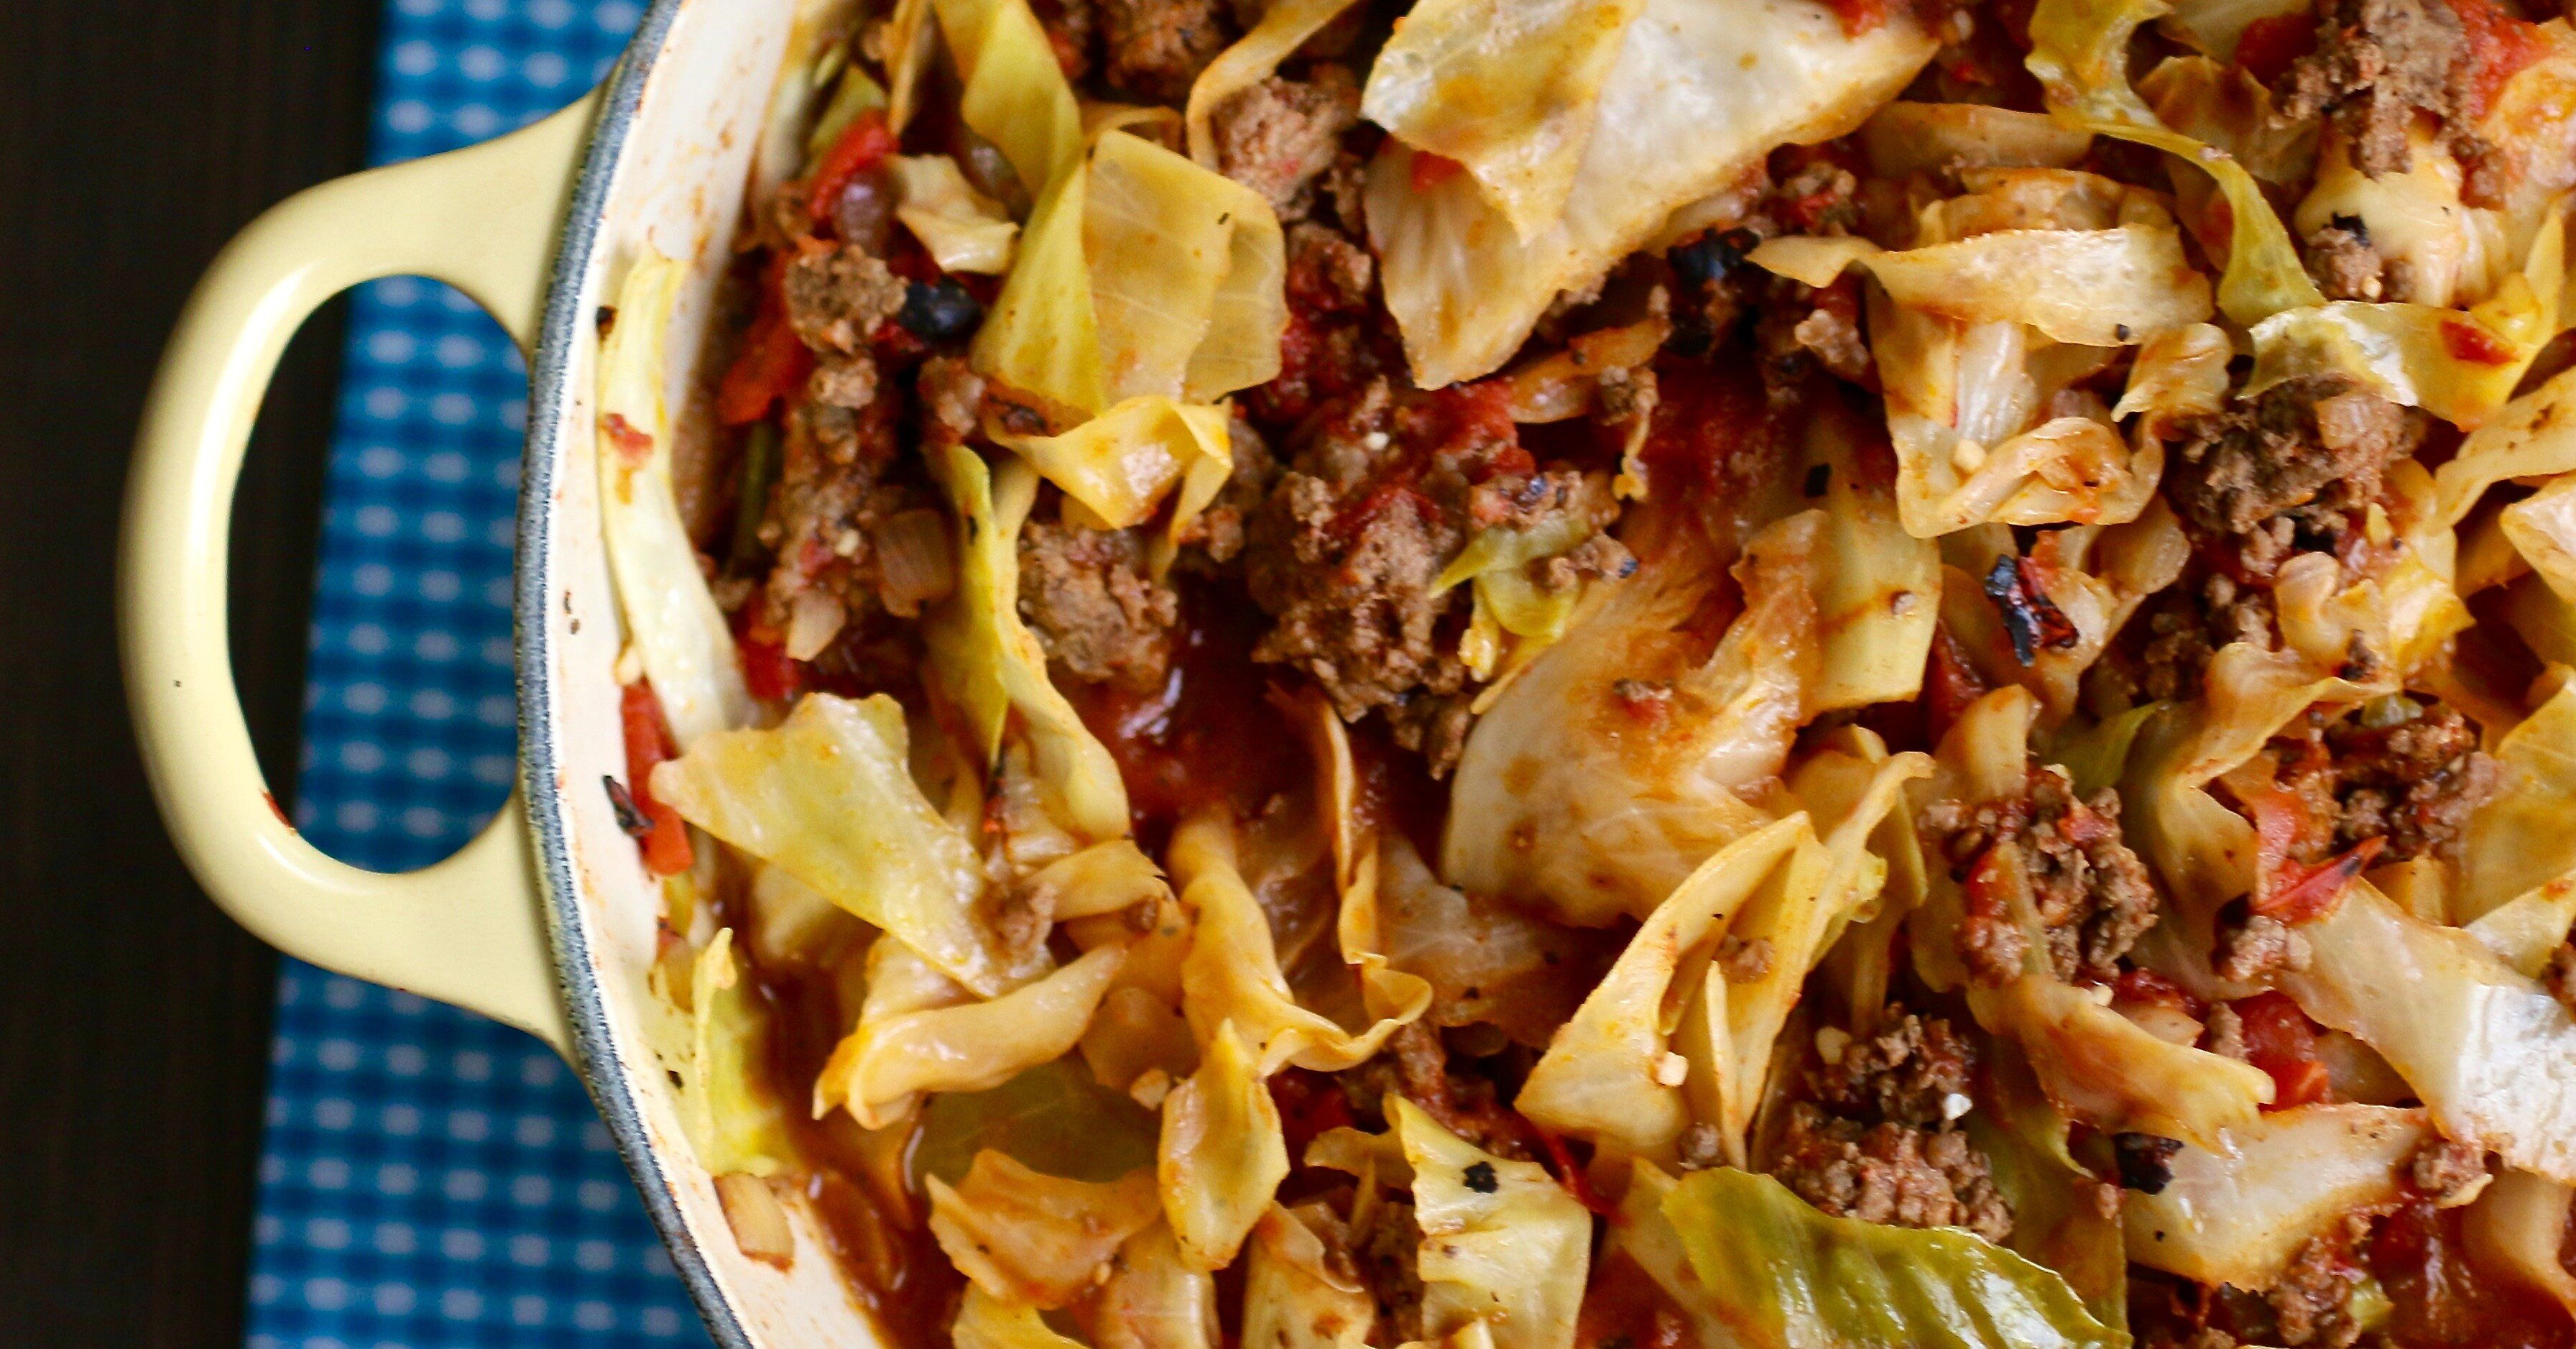 Unstuffed Cabbage Roll Recipe In 2020 Unstuffed Cabbage Rolls Recipes Unstuffed Cabbage